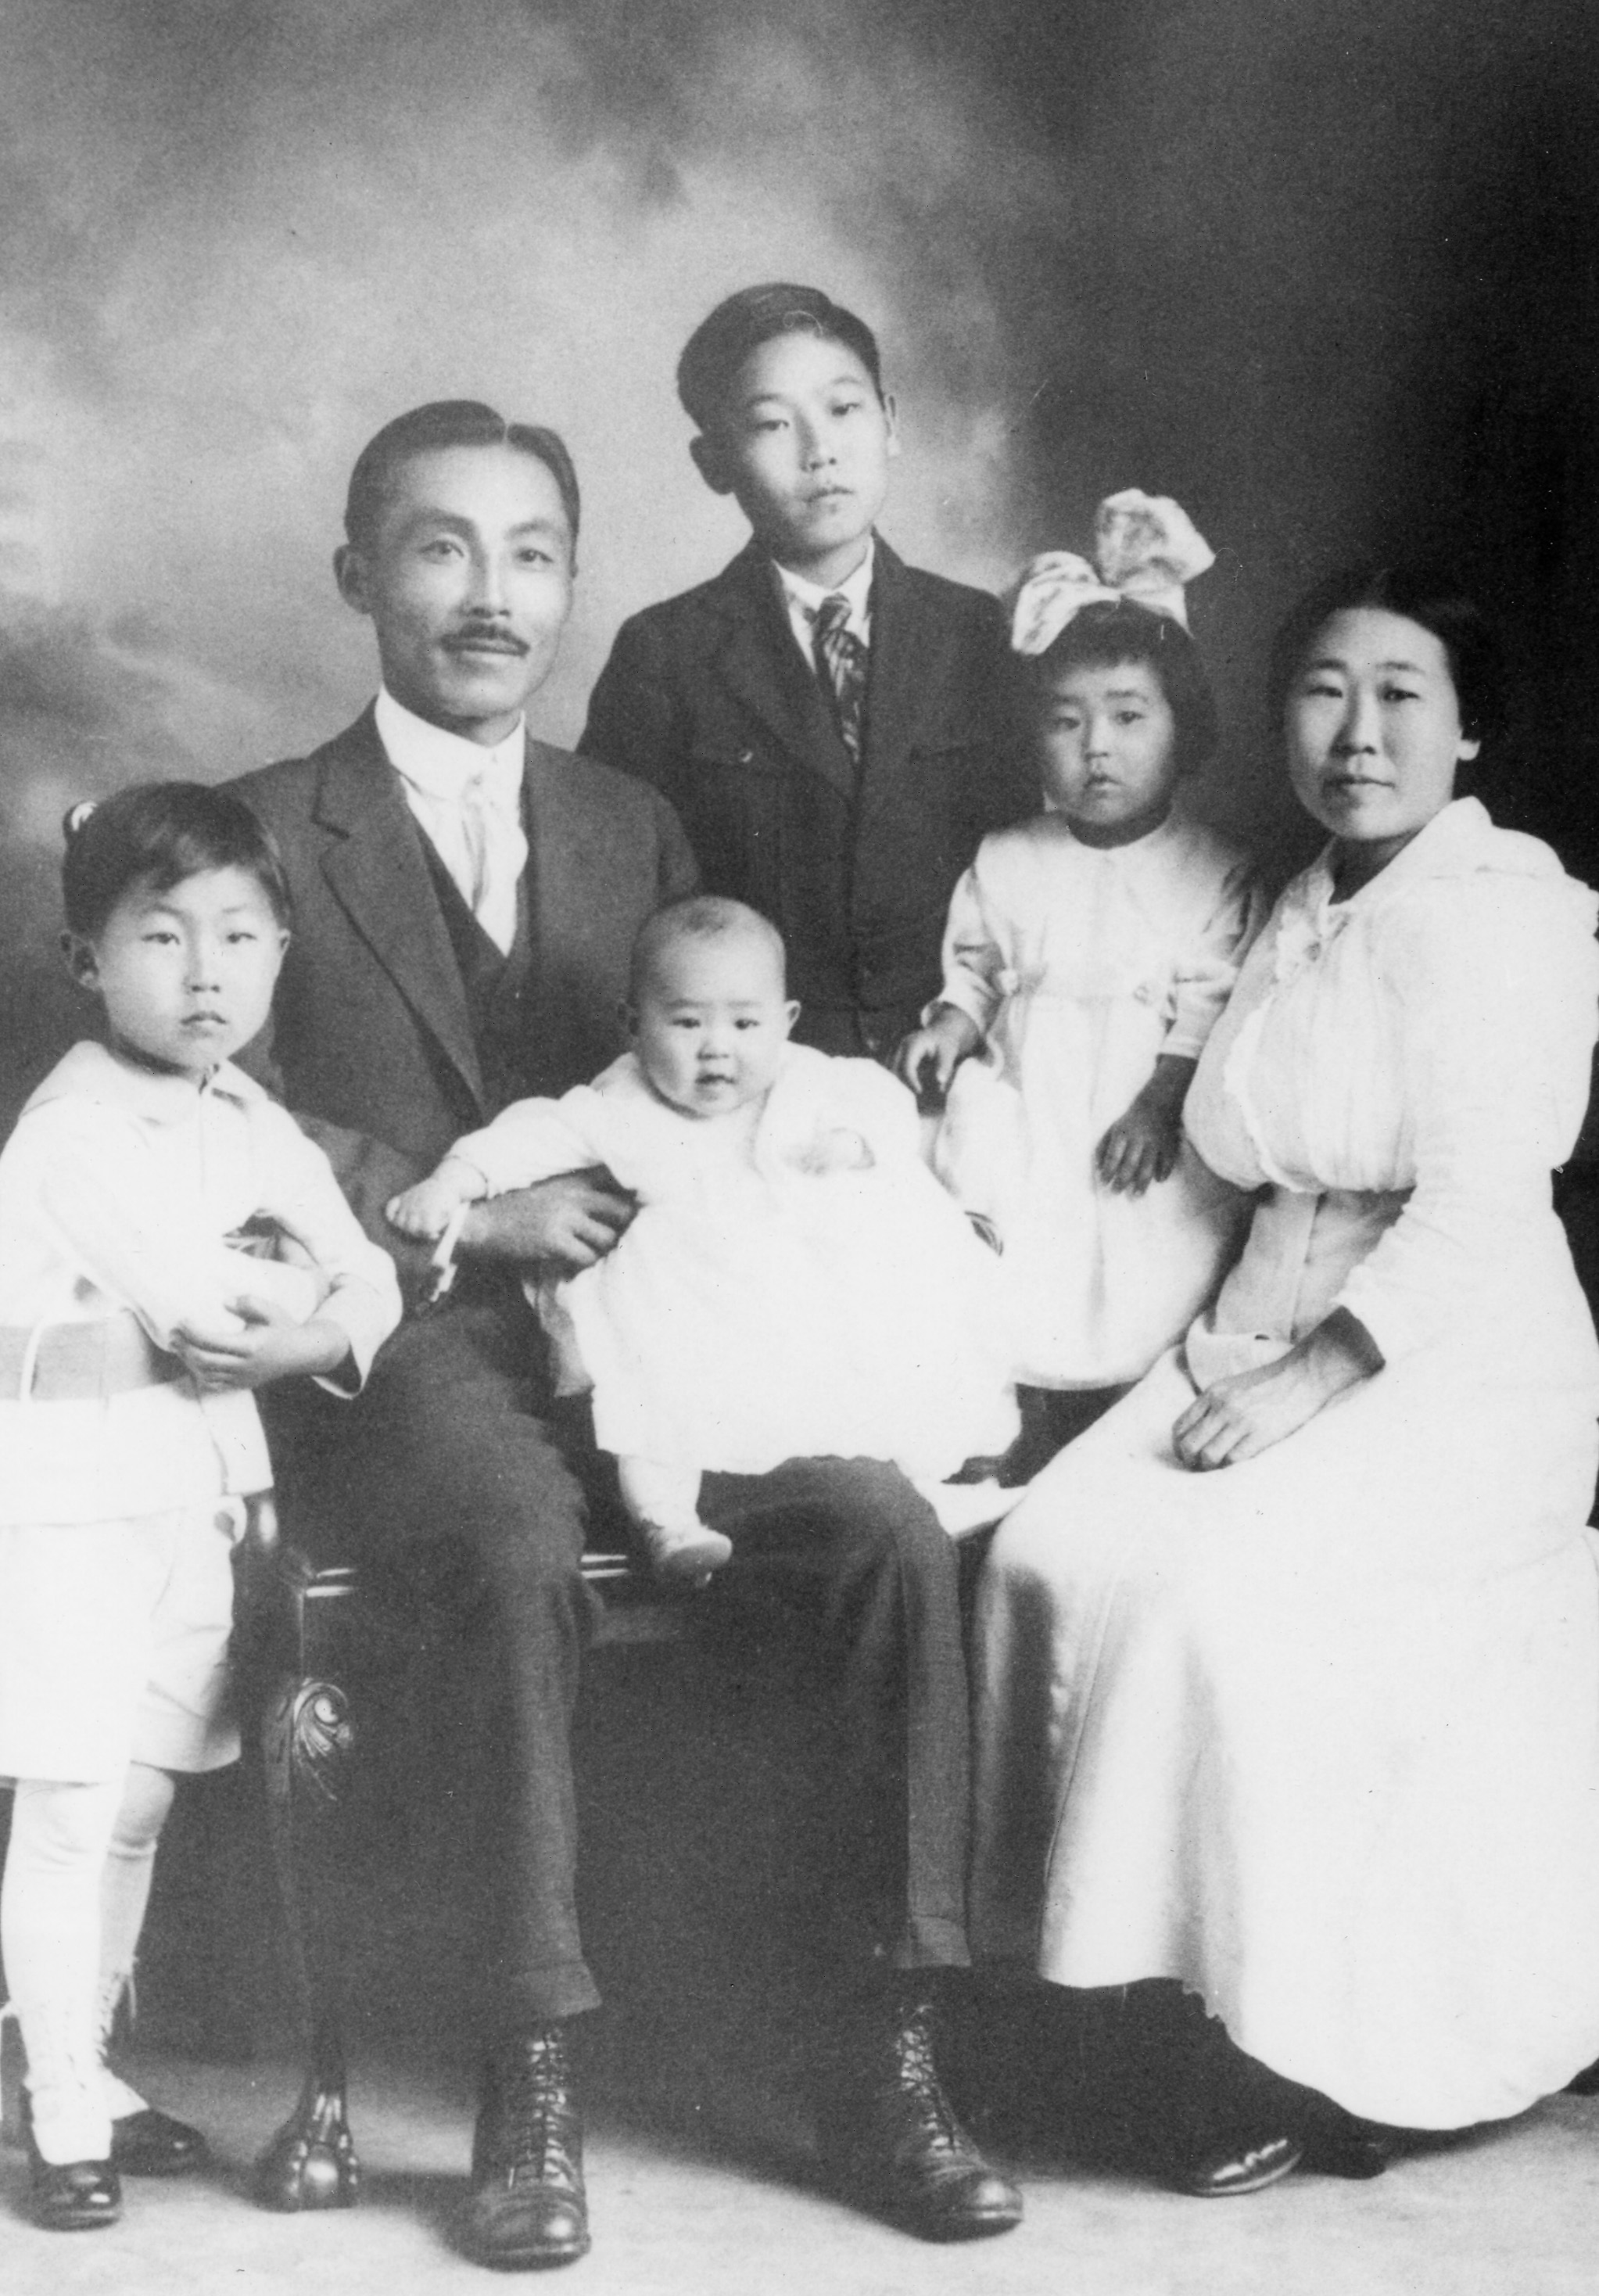 The Ahn Family in Los Angeles, 1917 | They were the first Korean family to have all their kids born in the U.S. Philip was born in HIghland Park; Philson was born in Riverside; Susan, Soorah, and Pilyoung were born in Los Angeles. This is the first Korean American family.